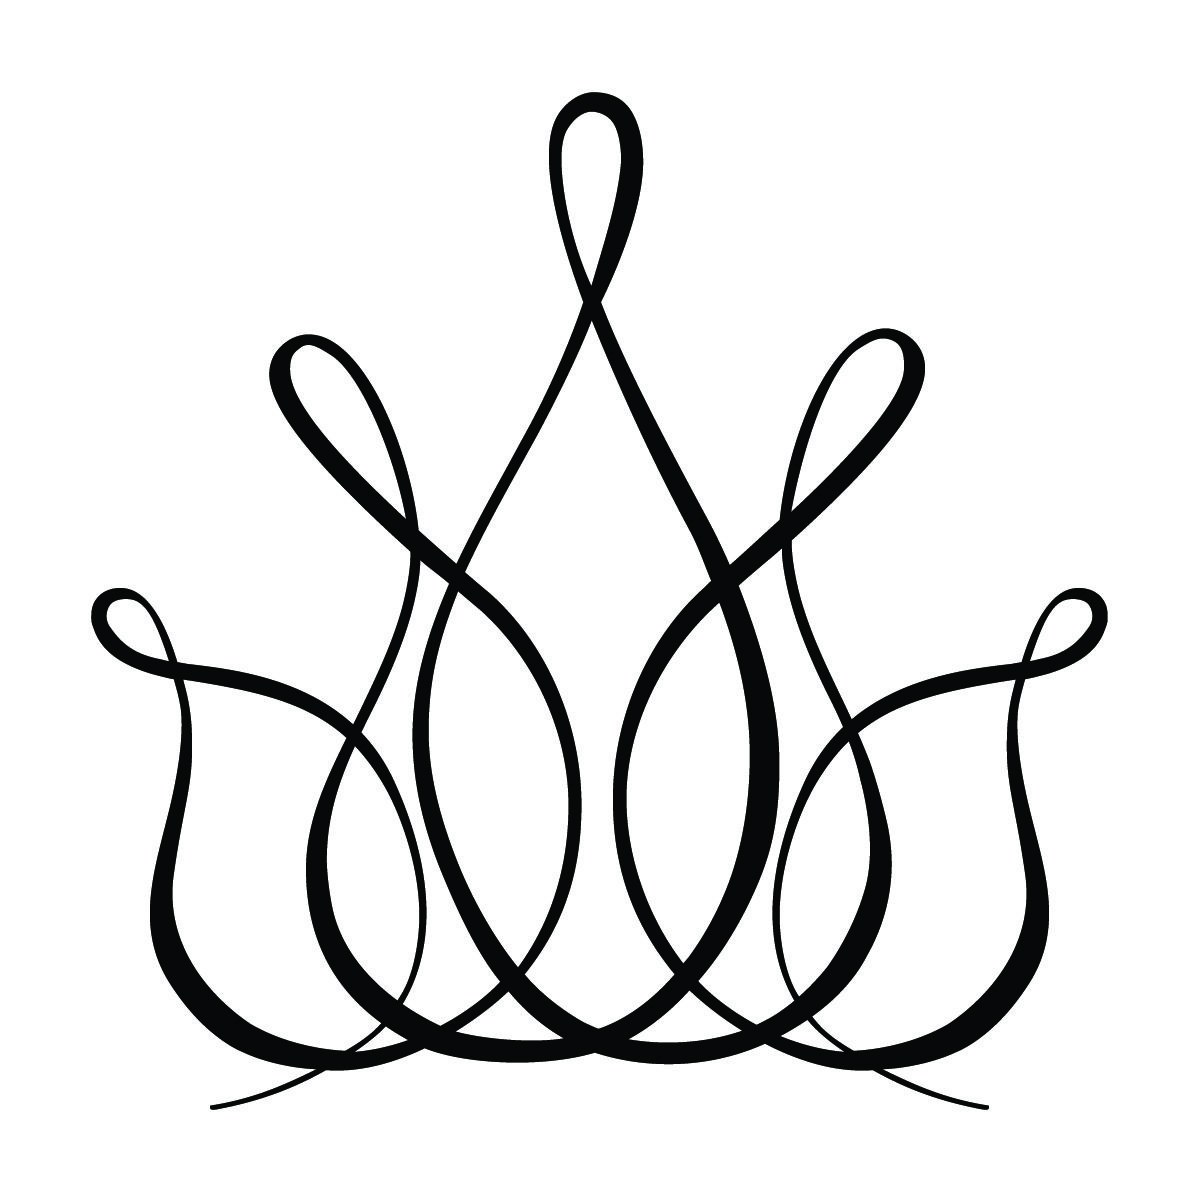 1200x1200 Use The Form Below To Delete This Black And White King Crown Clip